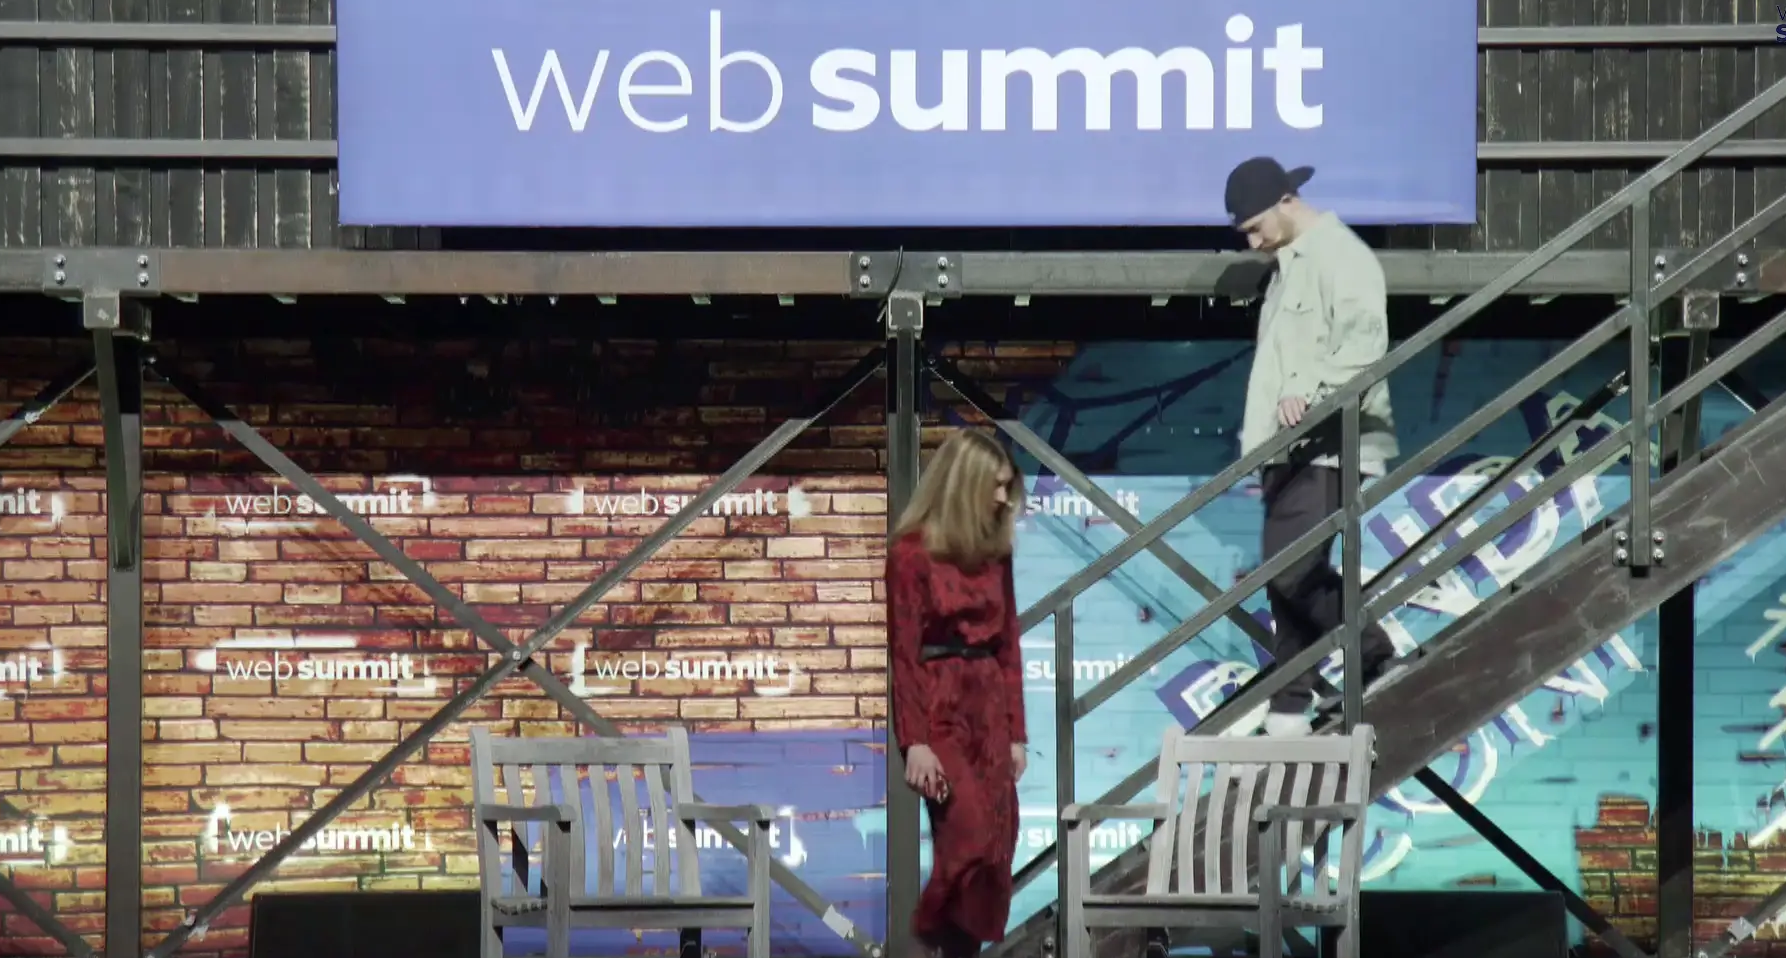 Watch this: #WebSummit snacks day 2